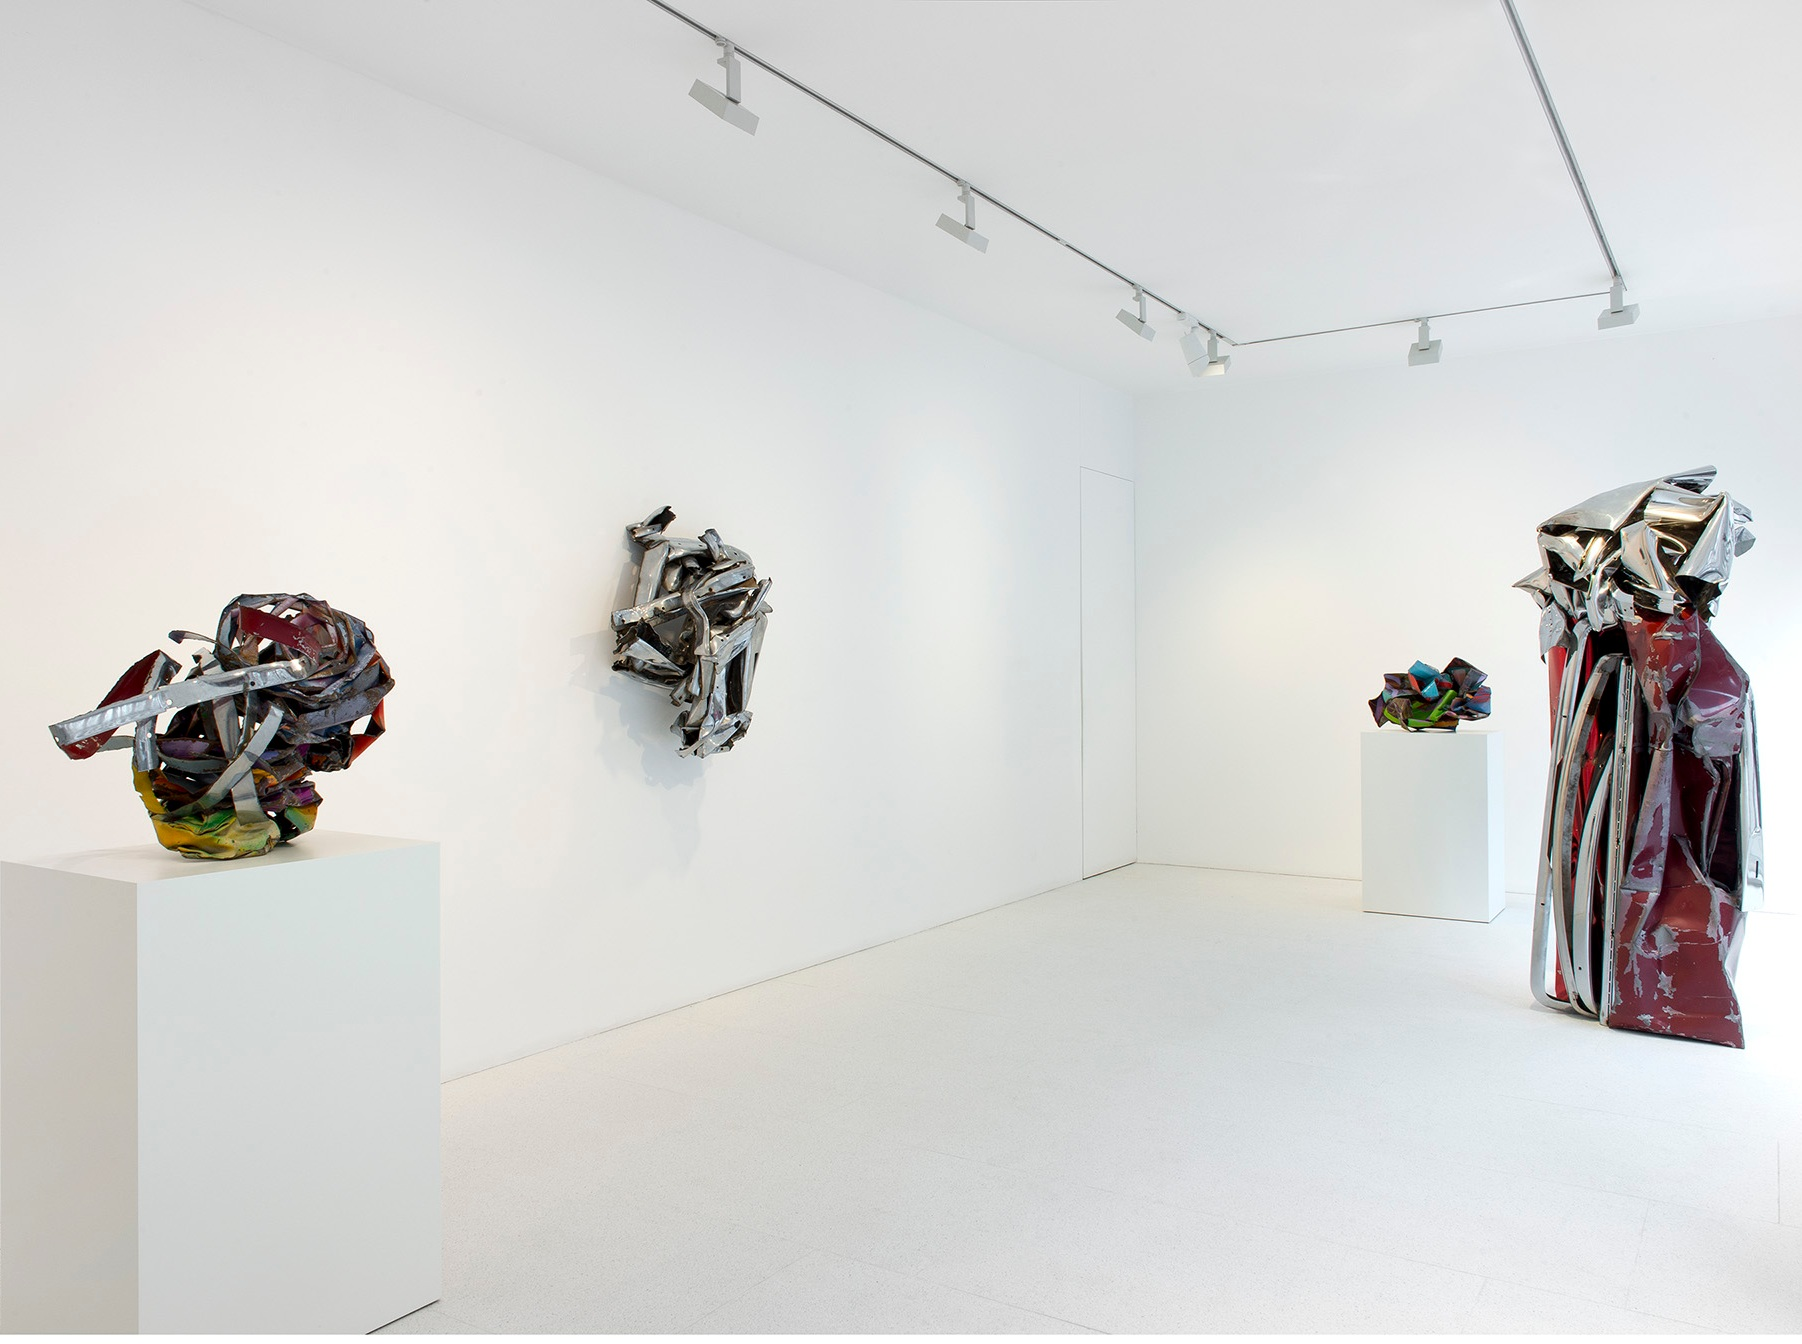 CHAMBERLAIN 2018 ENTIRELYFEARLESS Installation view 2.jpg